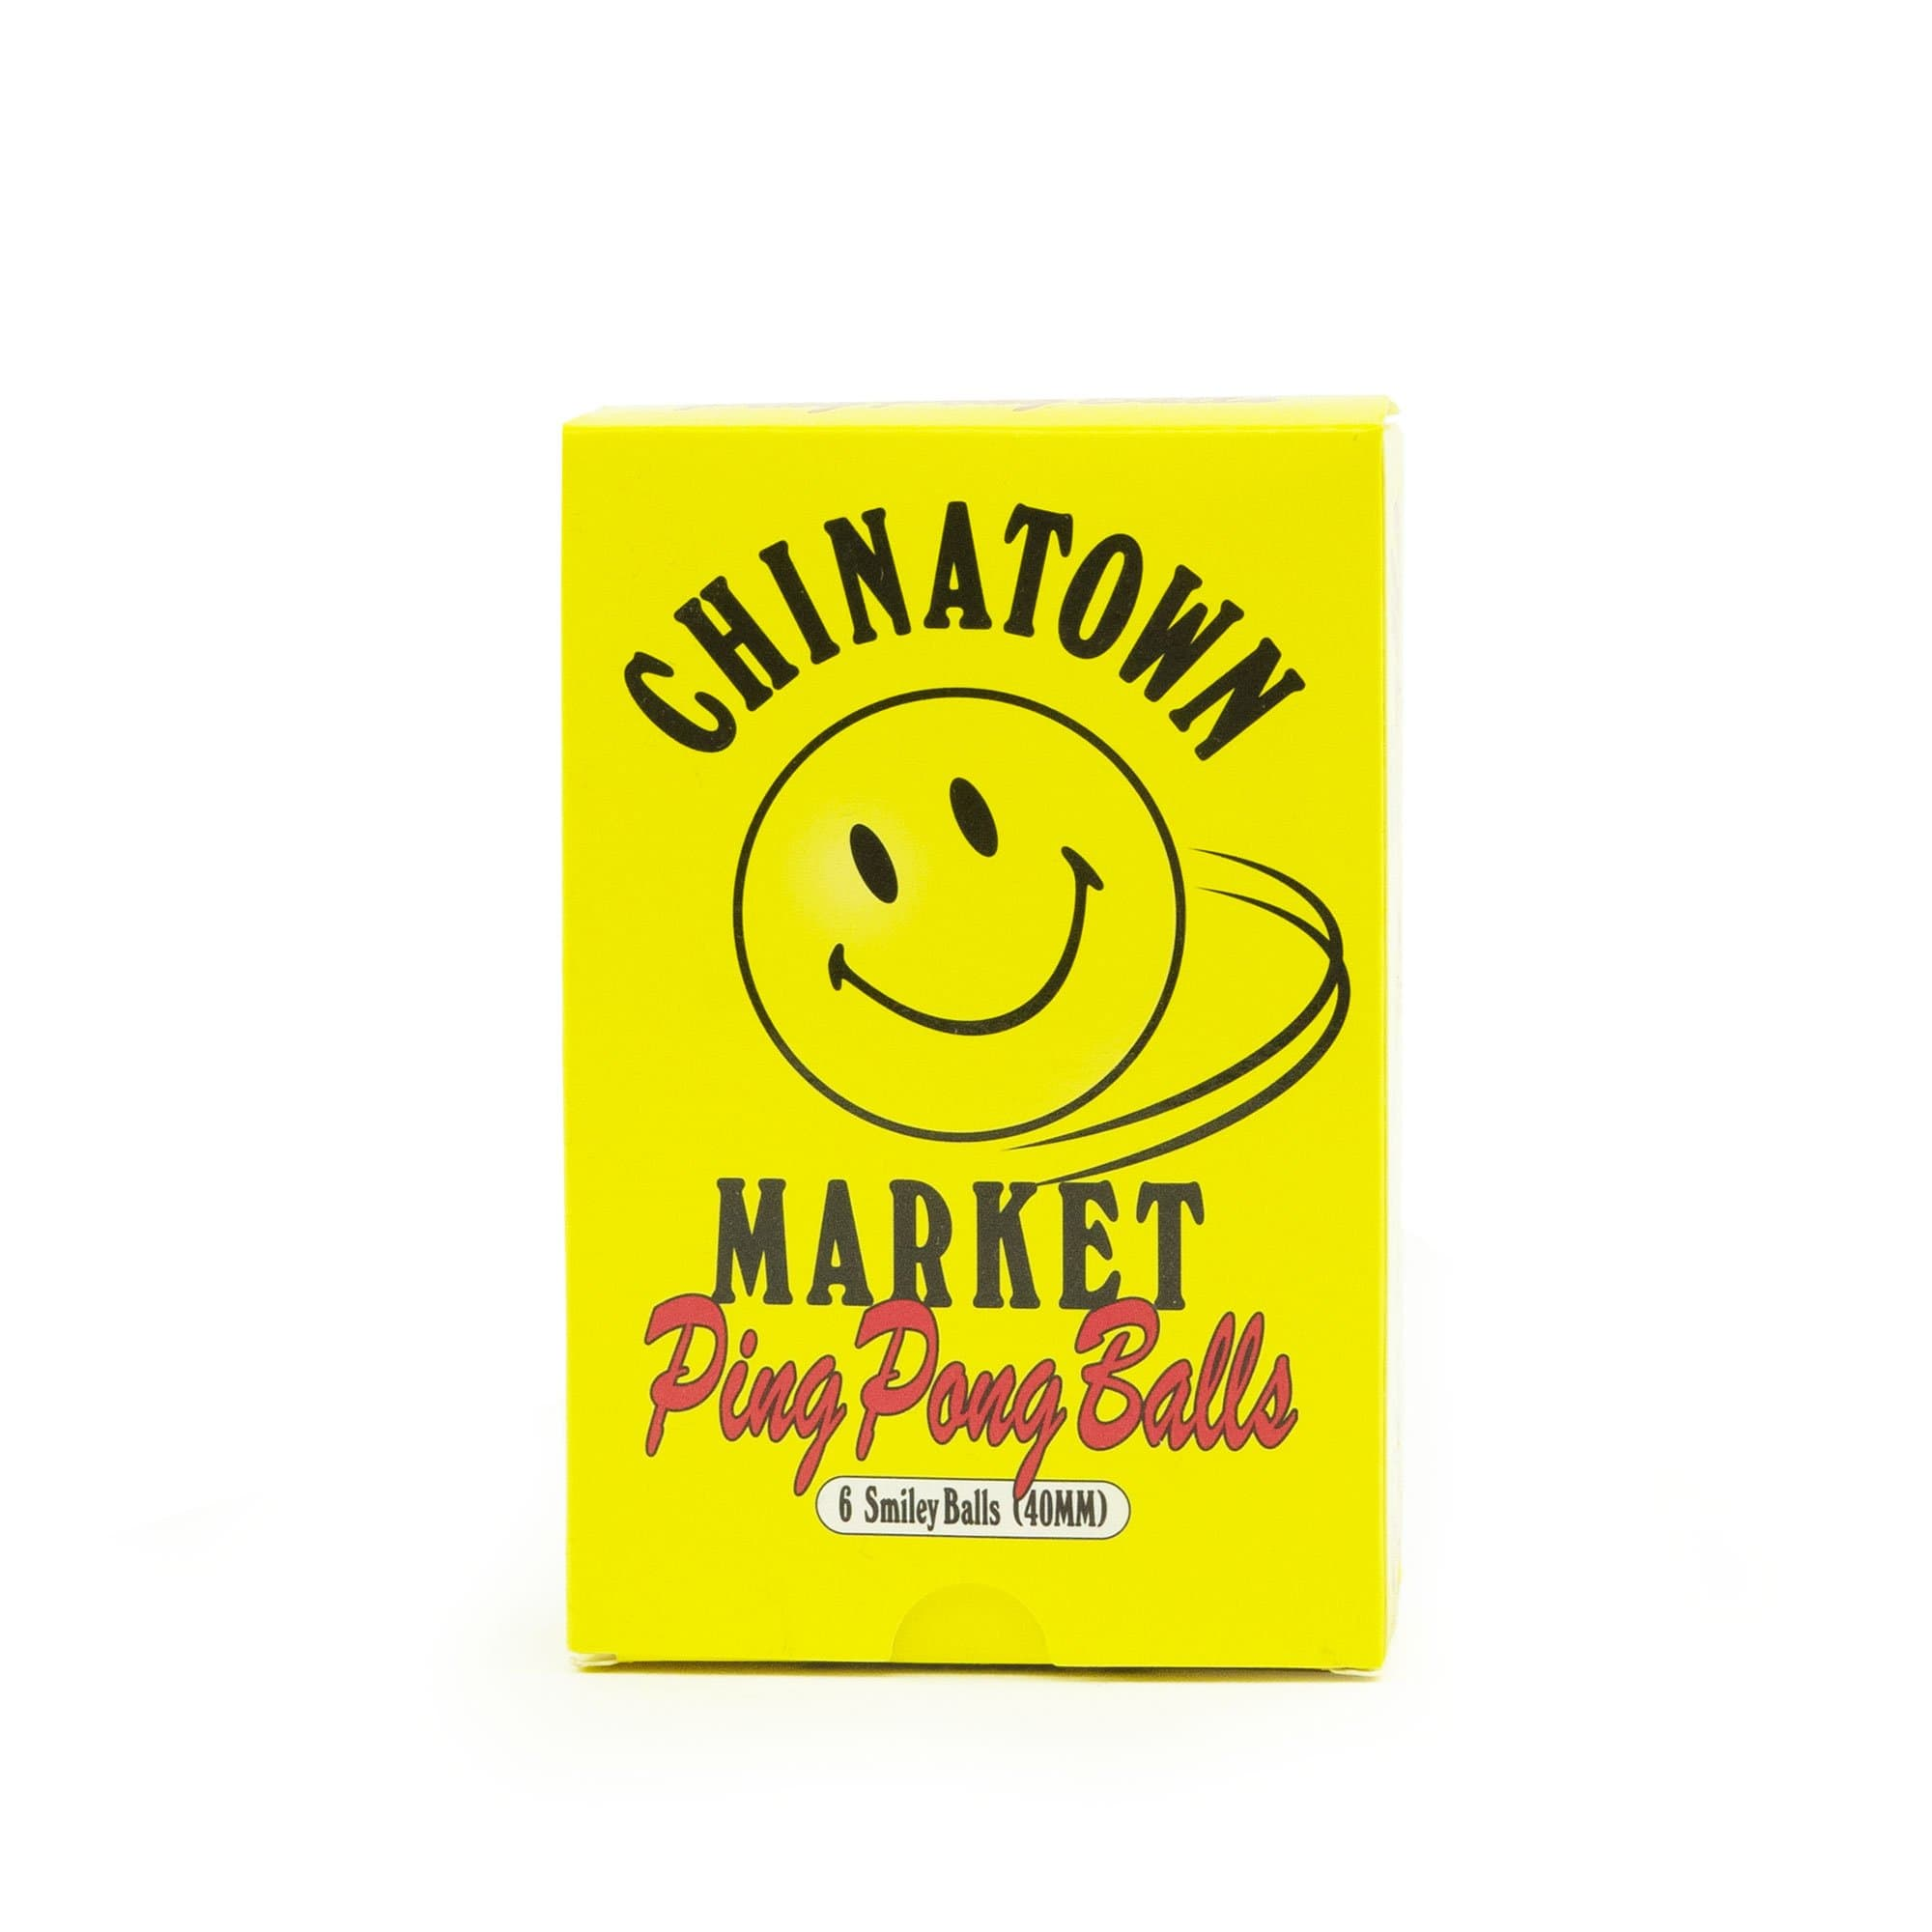 China Town Market Accessories Smiley Ping Pong Balls